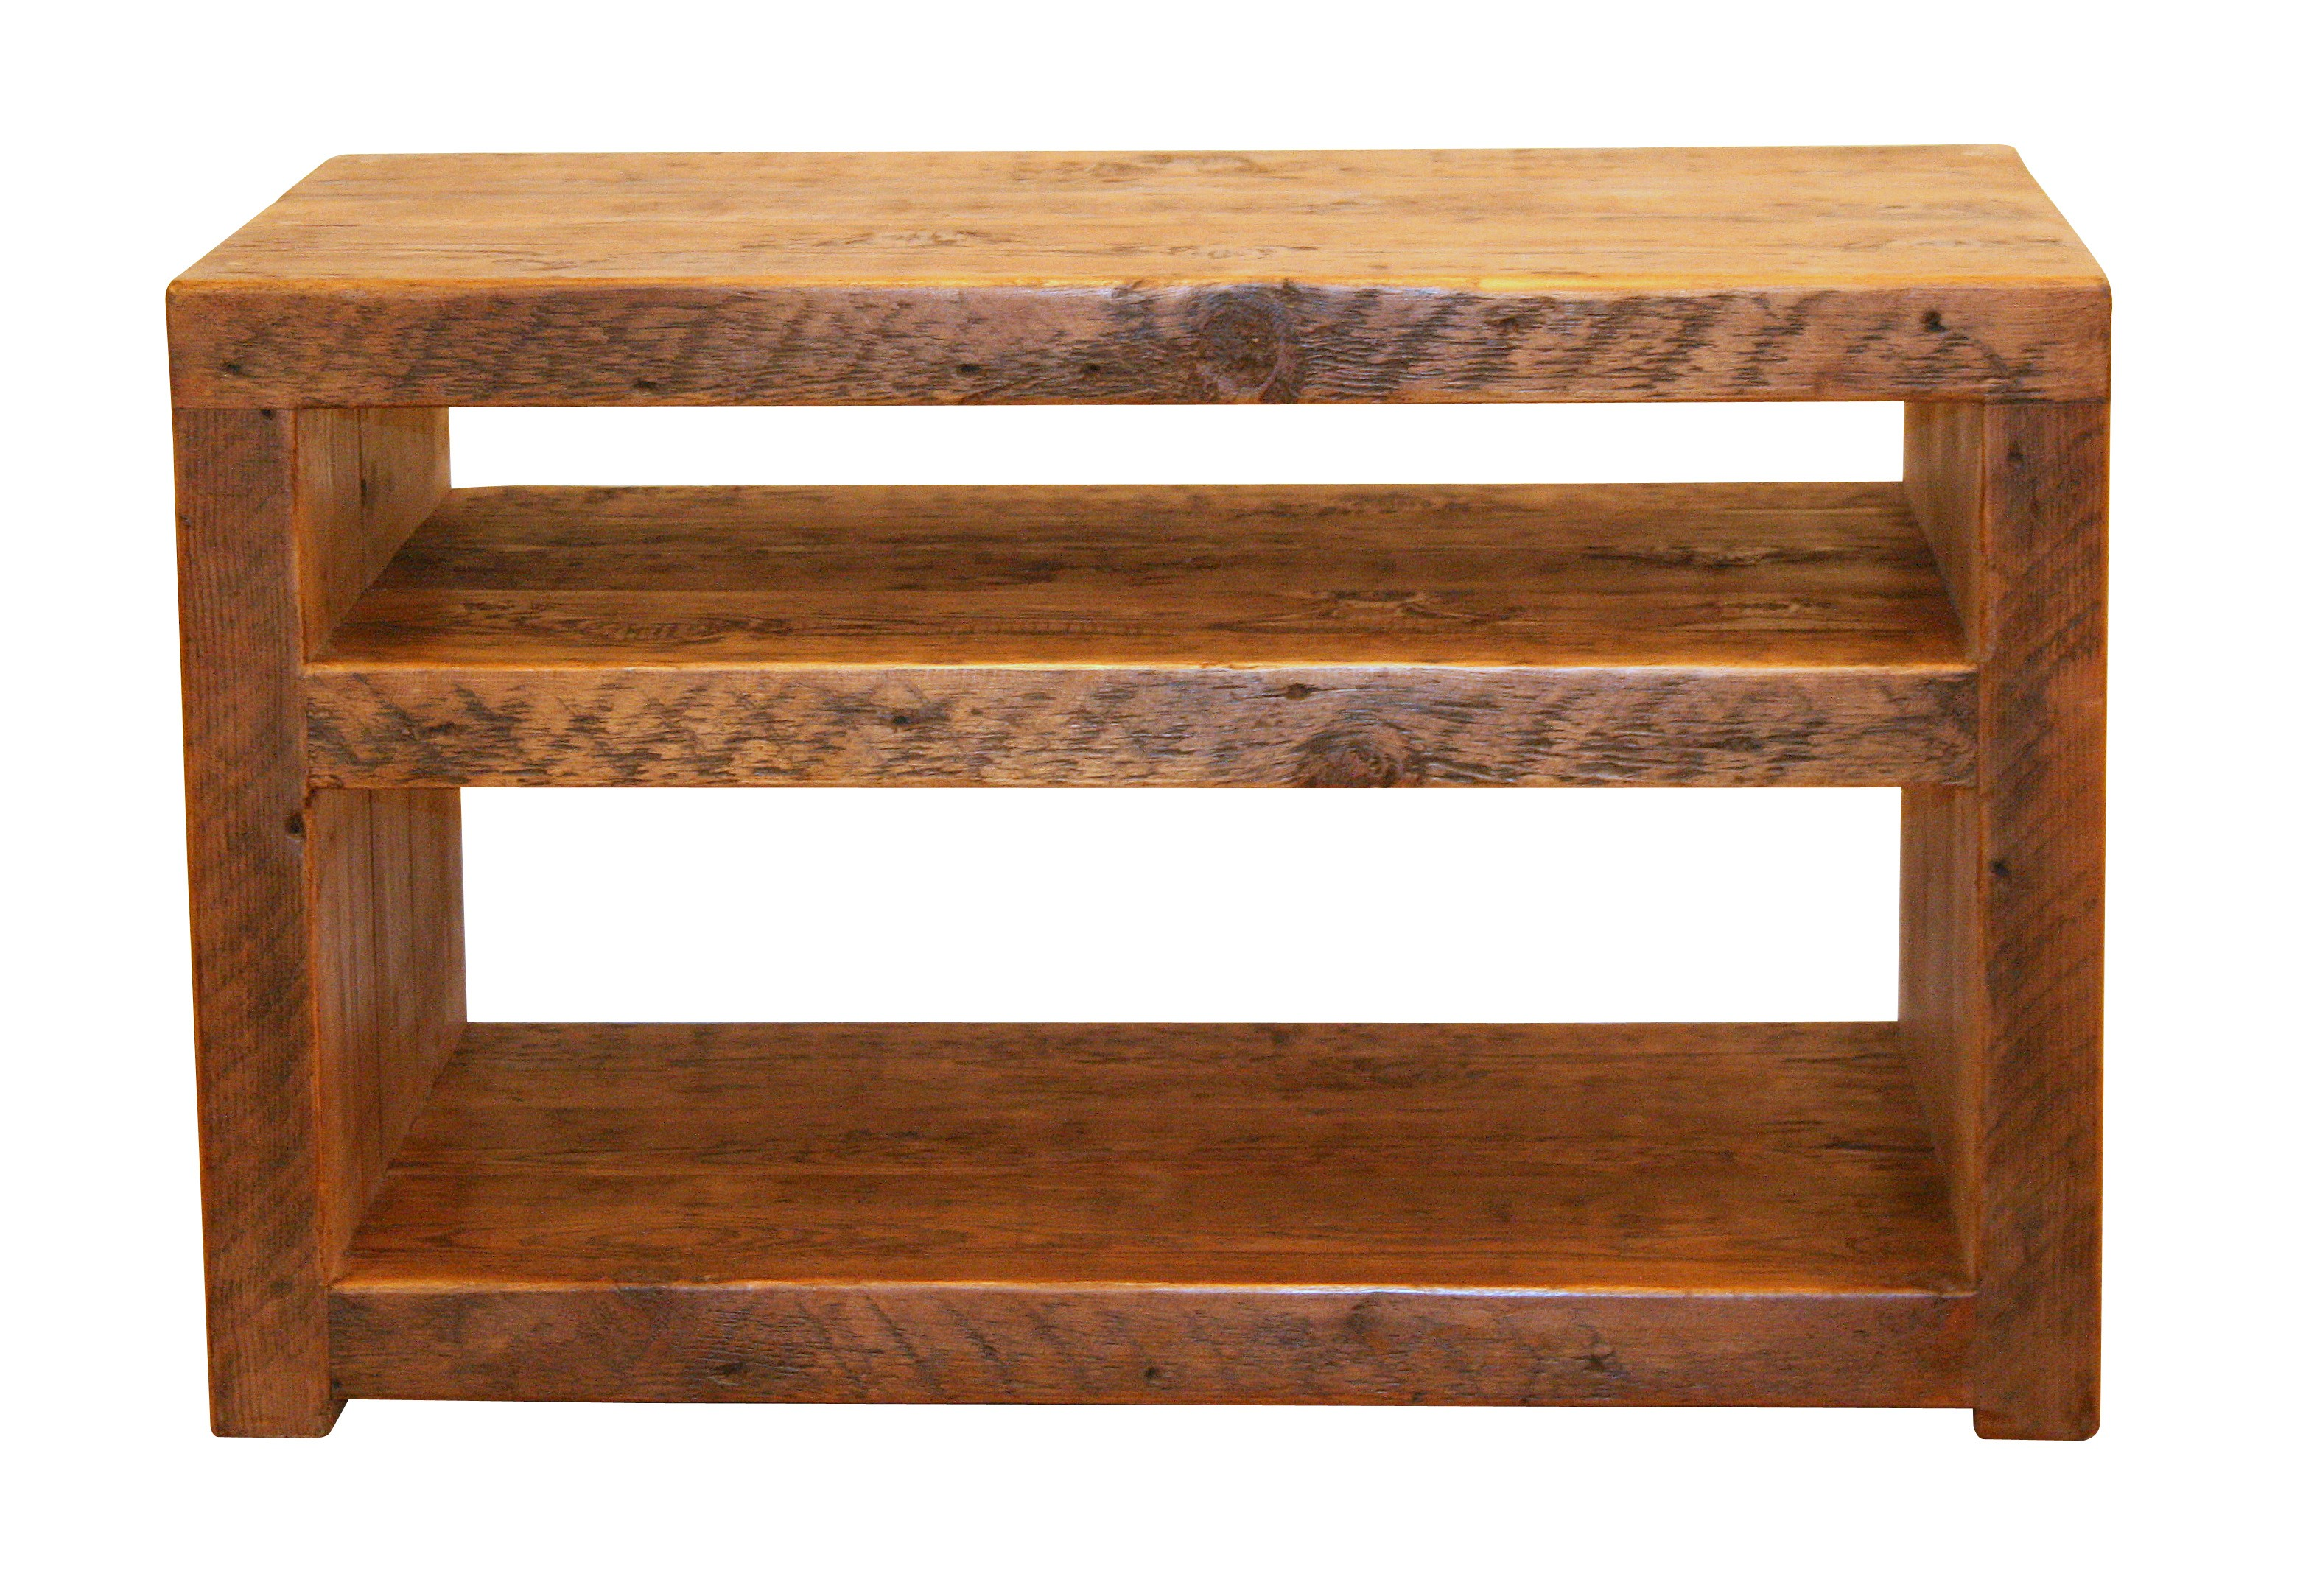 Double cube tv entertainment stands vintage reclaimed furniture edinburgh - Reclaimed wood tv stand ideas ...